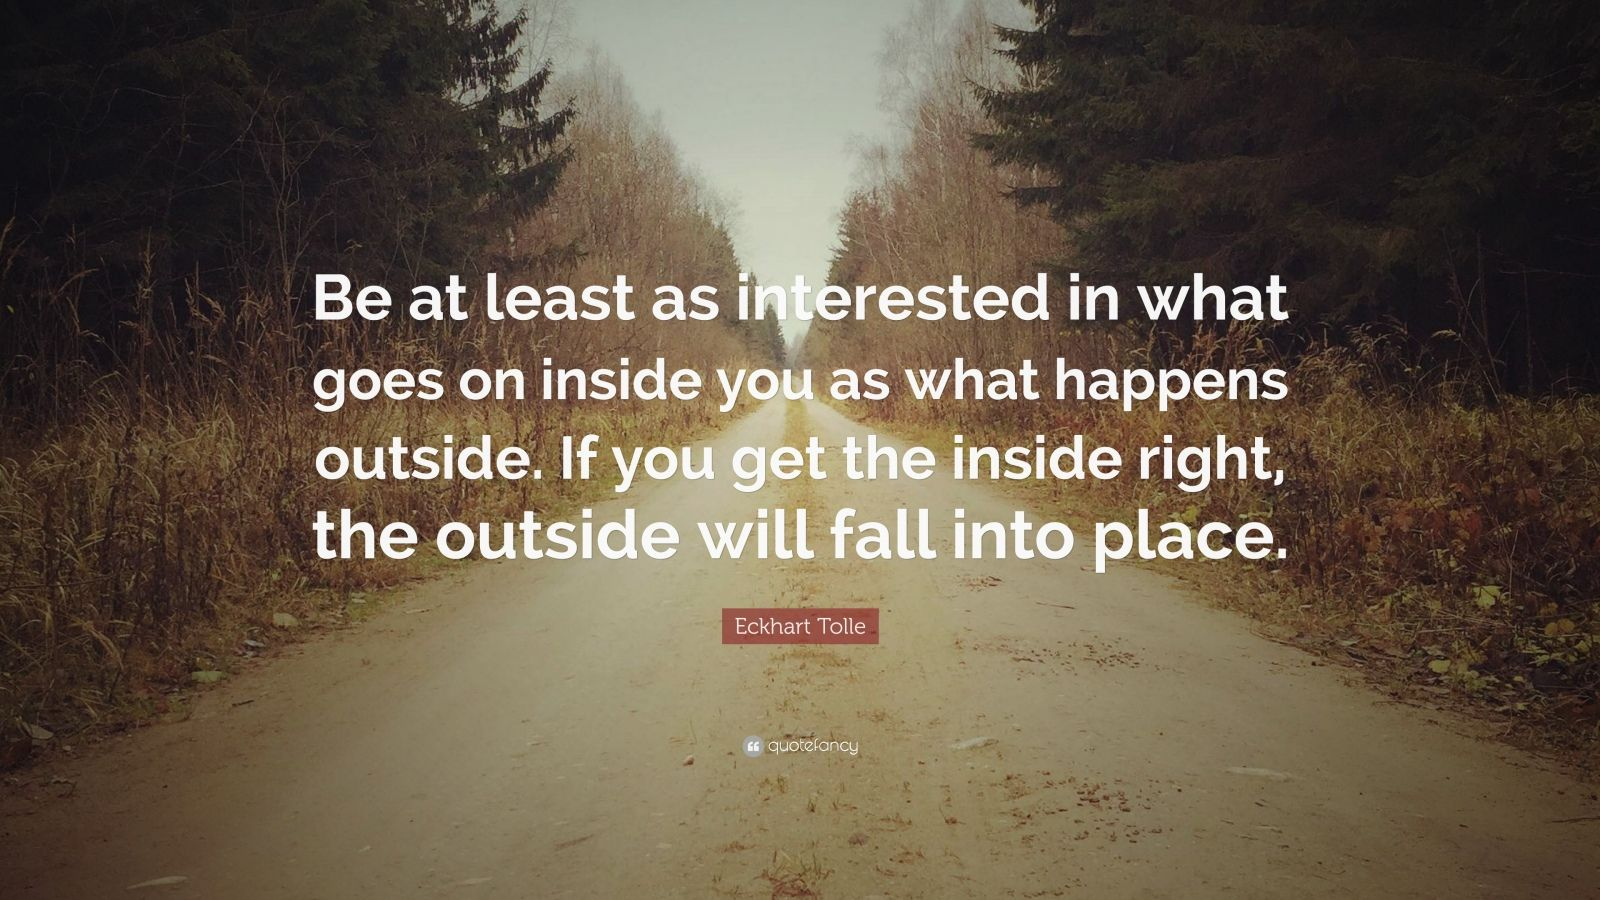 """Eckhart Tolle Quote: """"Be at least as interested in what goes on inside you as what happens outside. If you get the inside right, the outside will fall into place."""""""